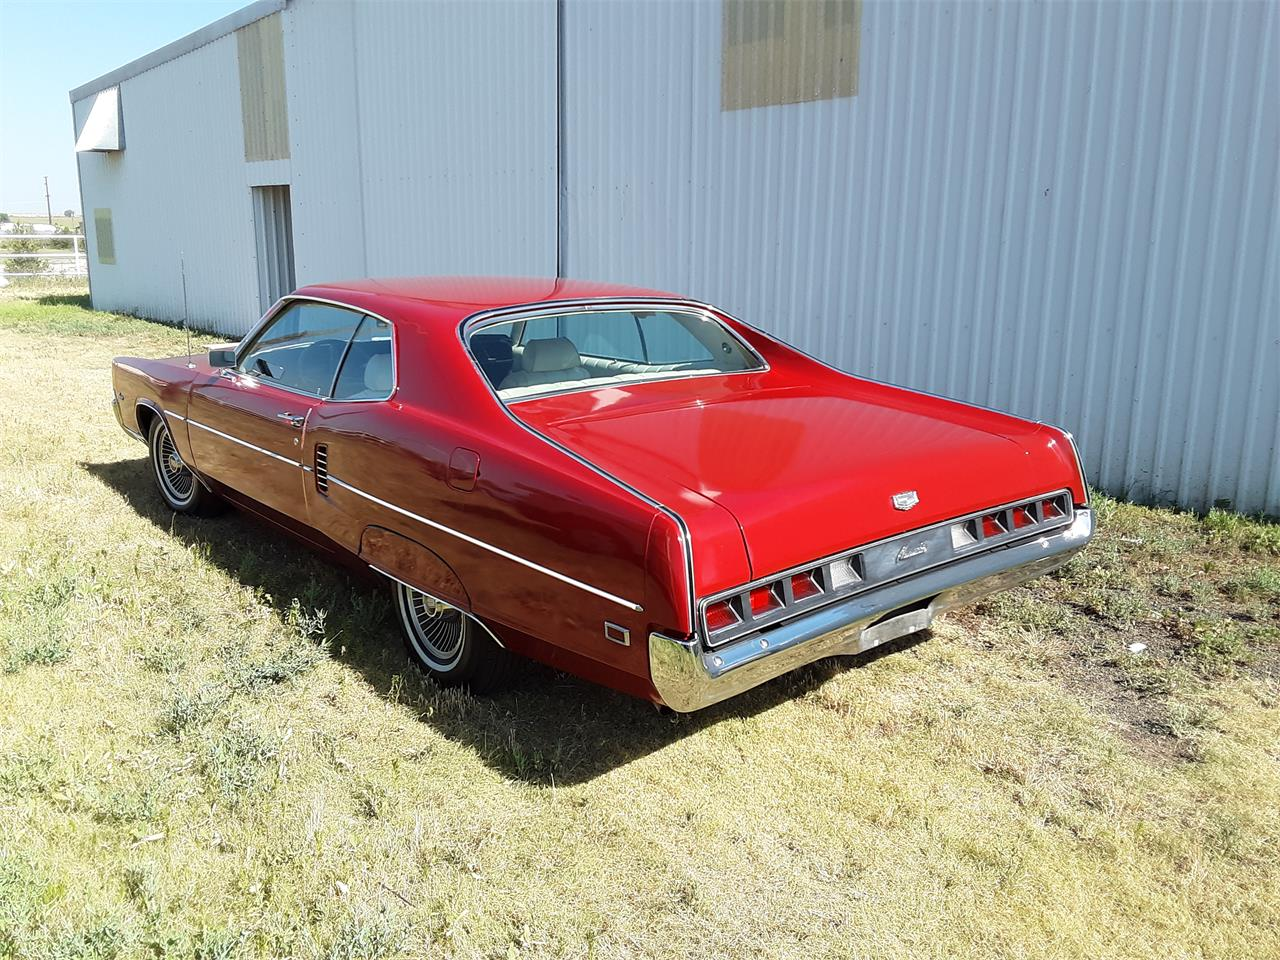 1969 Mercury Marauder for sale in Amarillo, TX – photo 2